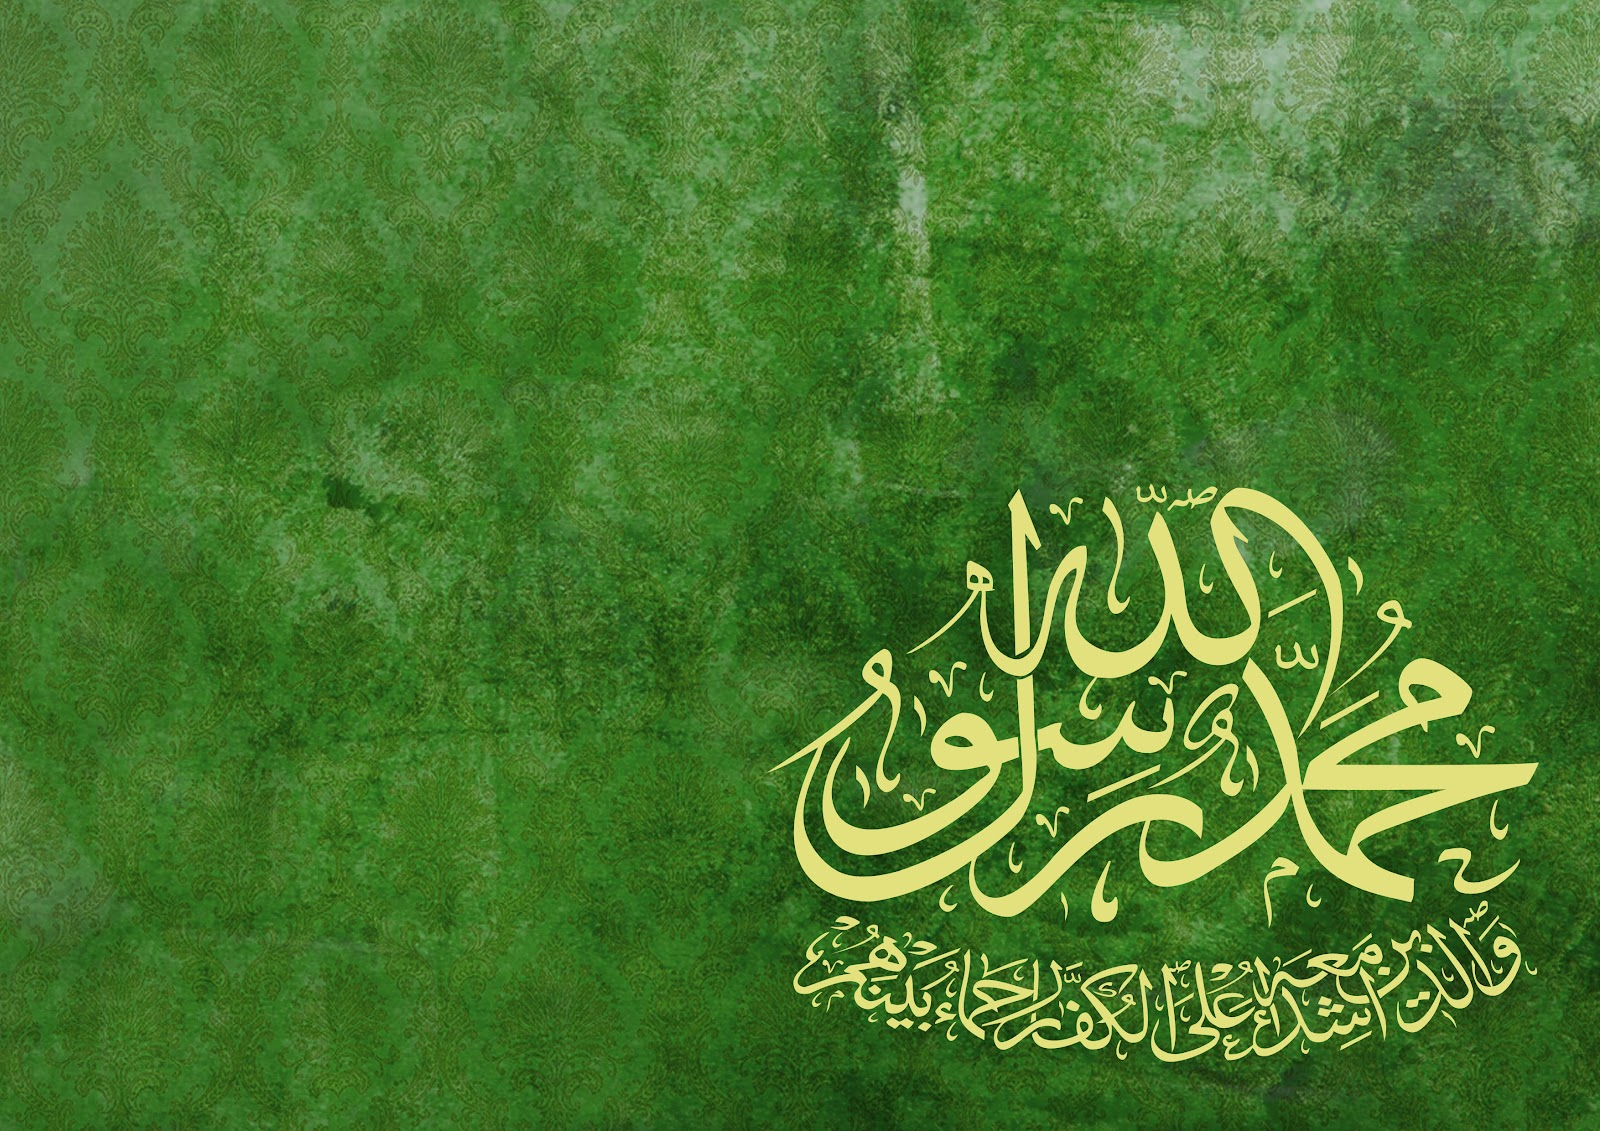 ISLAM THE PERFECT RELIGION: Best Islamic Calligraphy